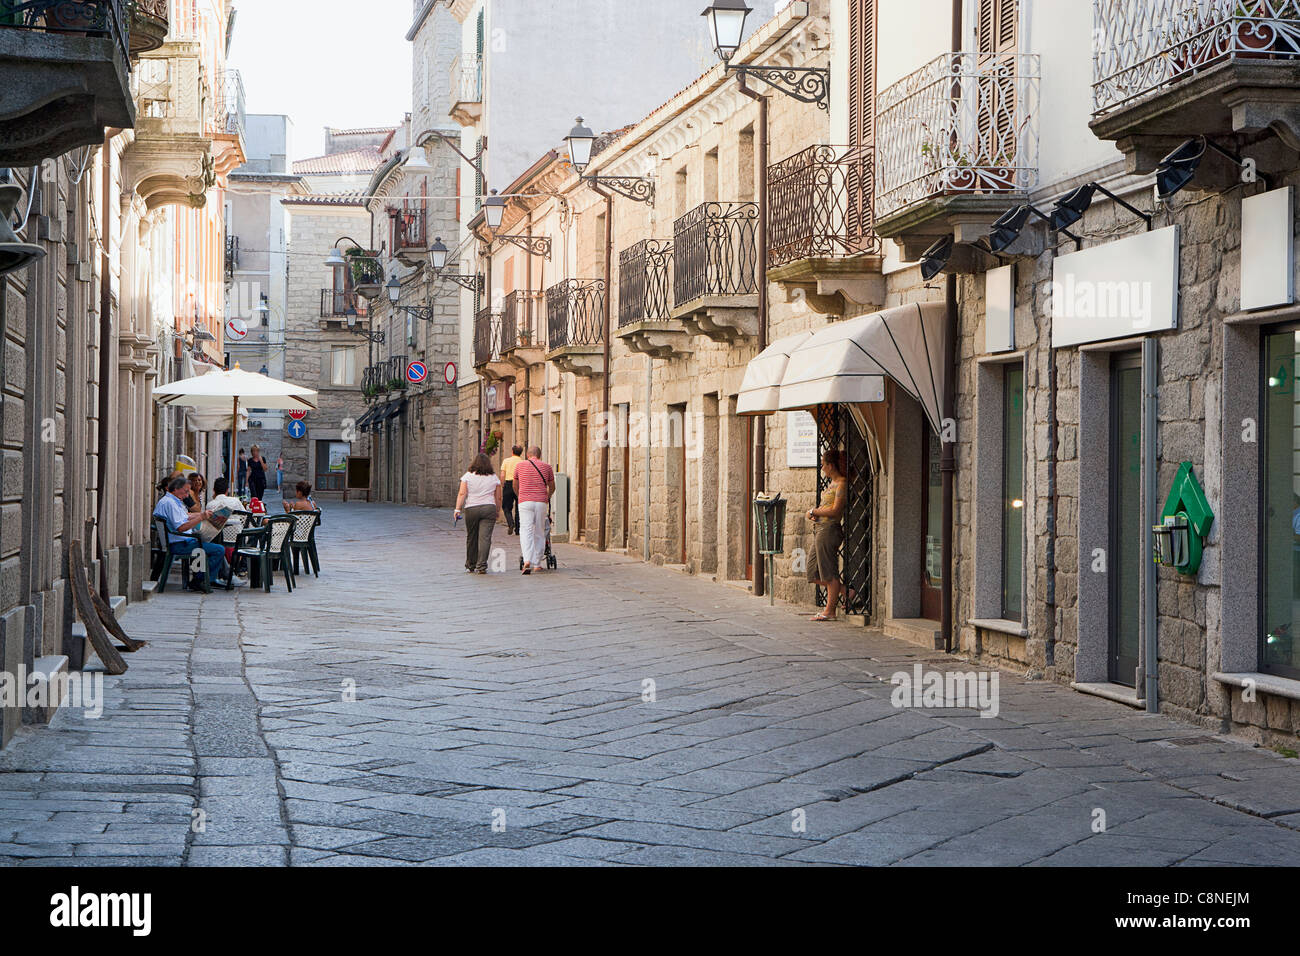 italy sardinia tempio pausania street in the old quarter stock photo 39810476 alamy. Black Bedroom Furniture Sets. Home Design Ideas